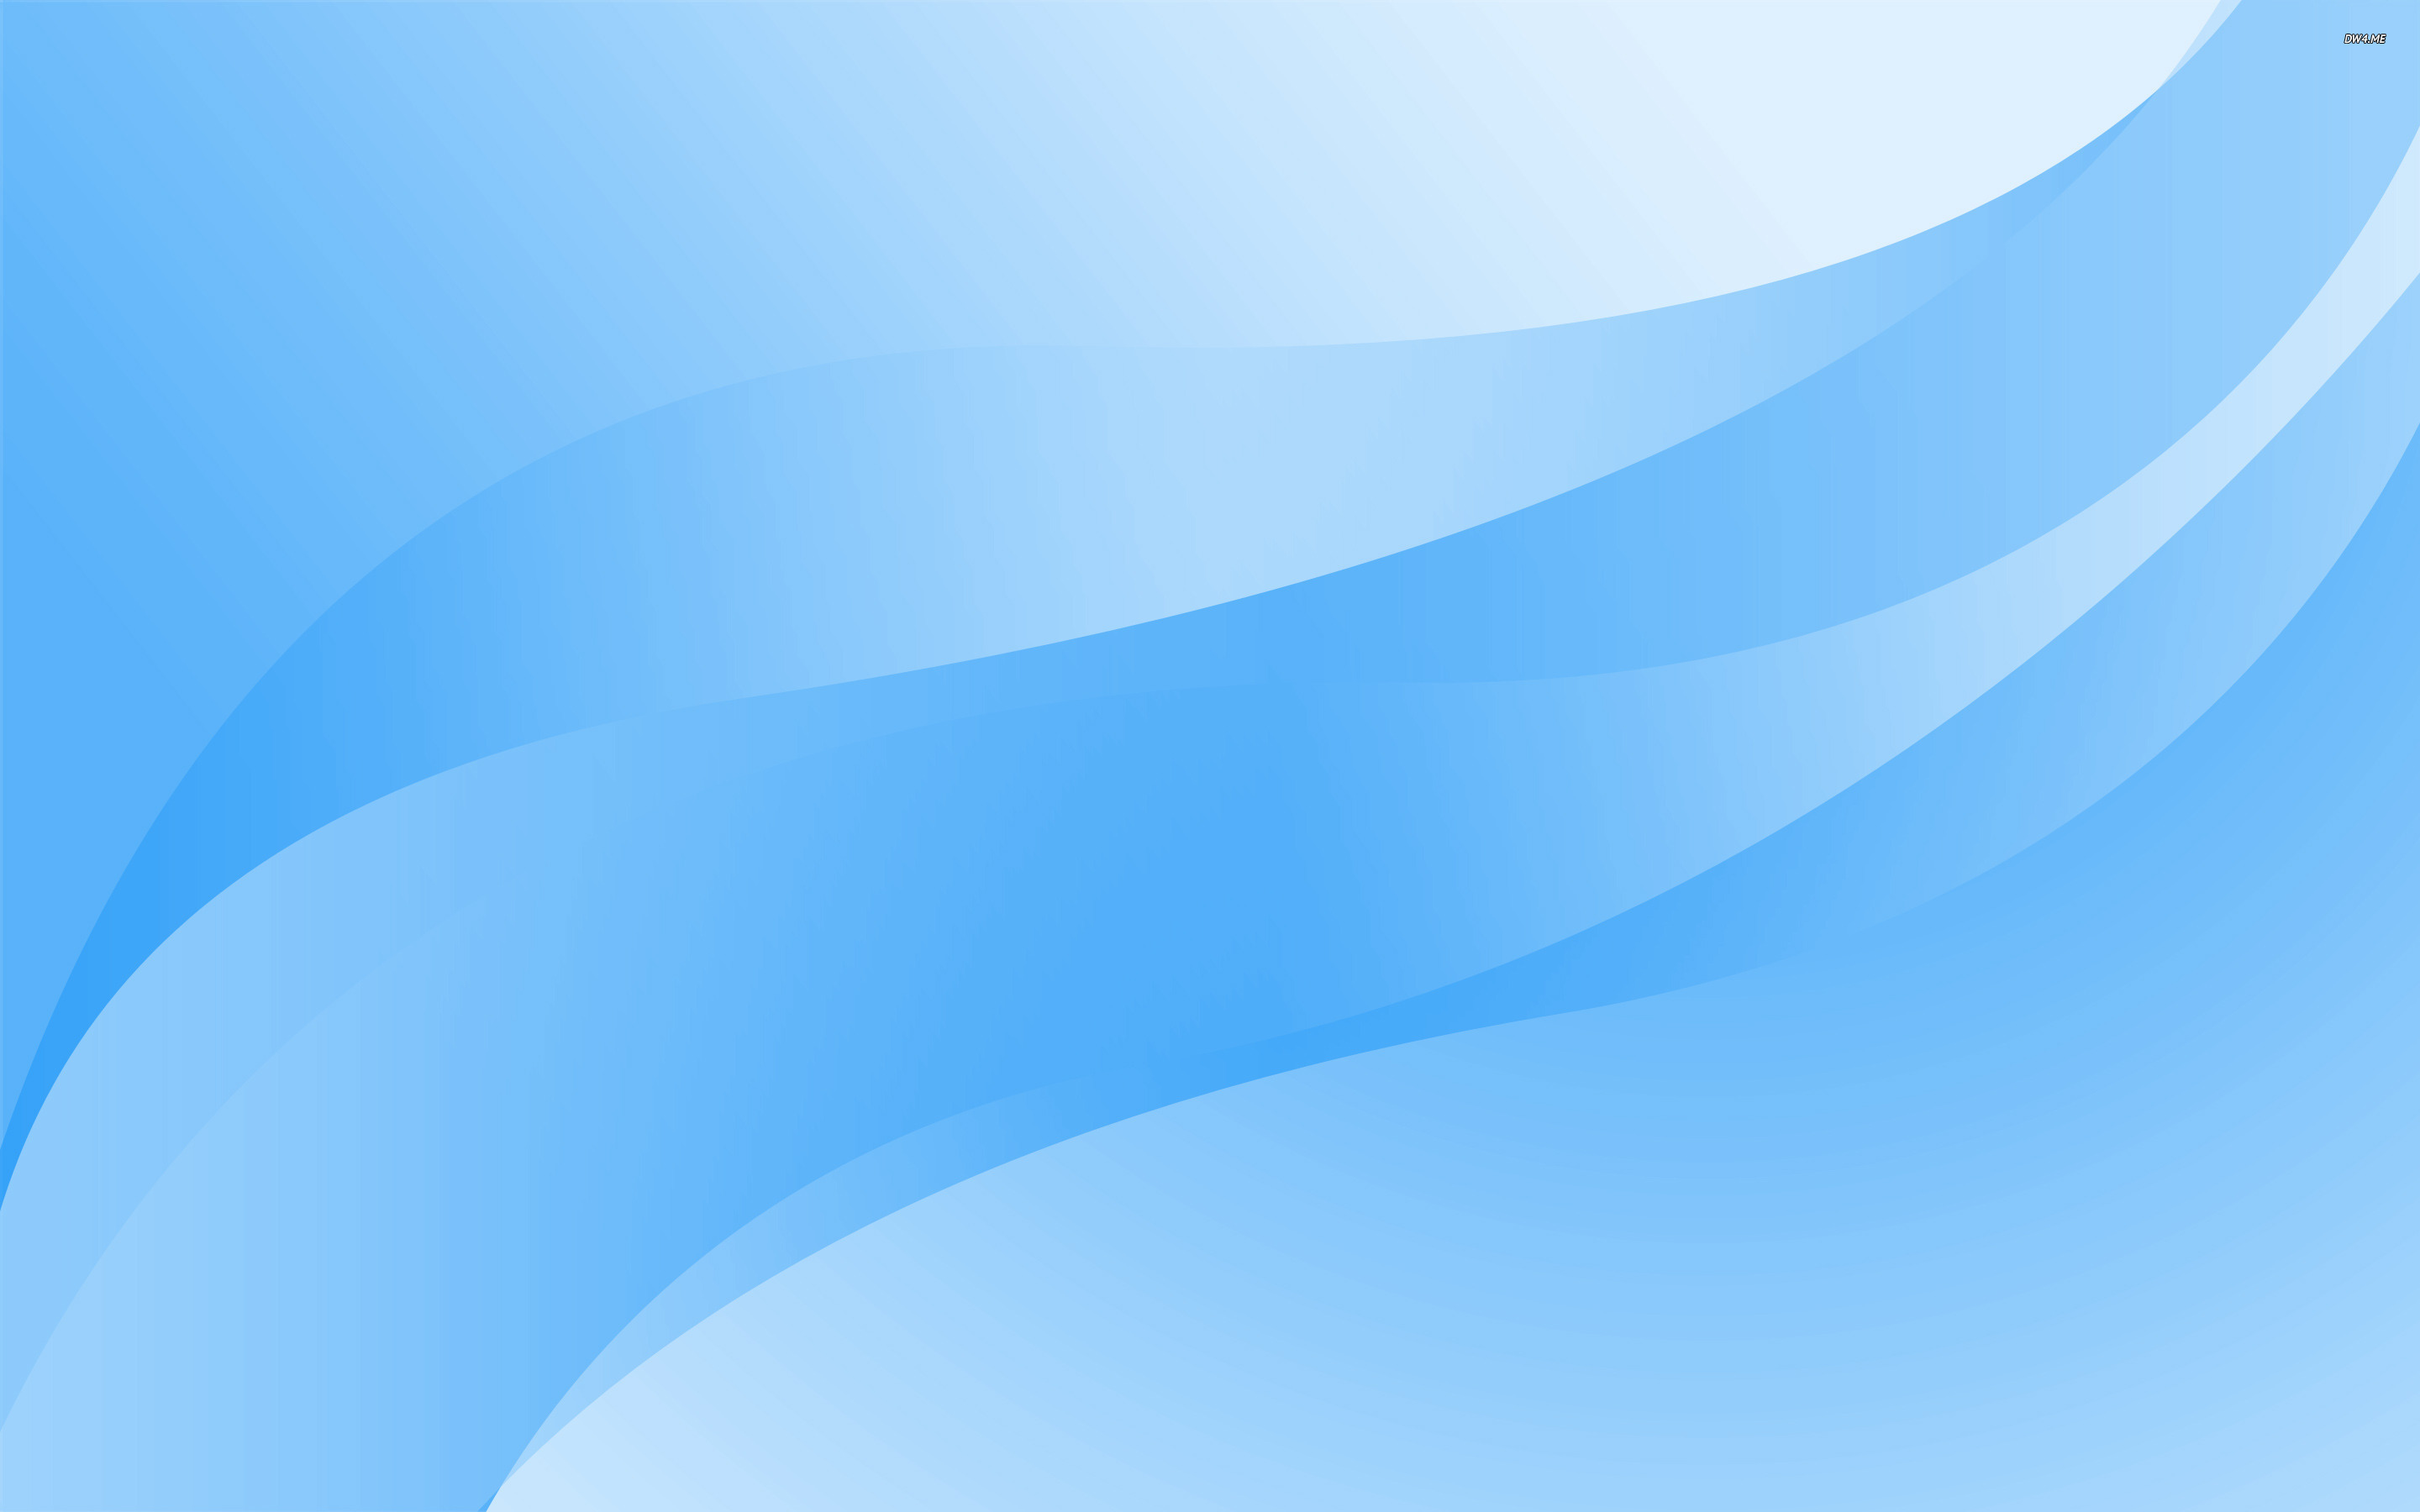 Light blue curves wallpaper   Abstract wallpapers   2169 2880x1800